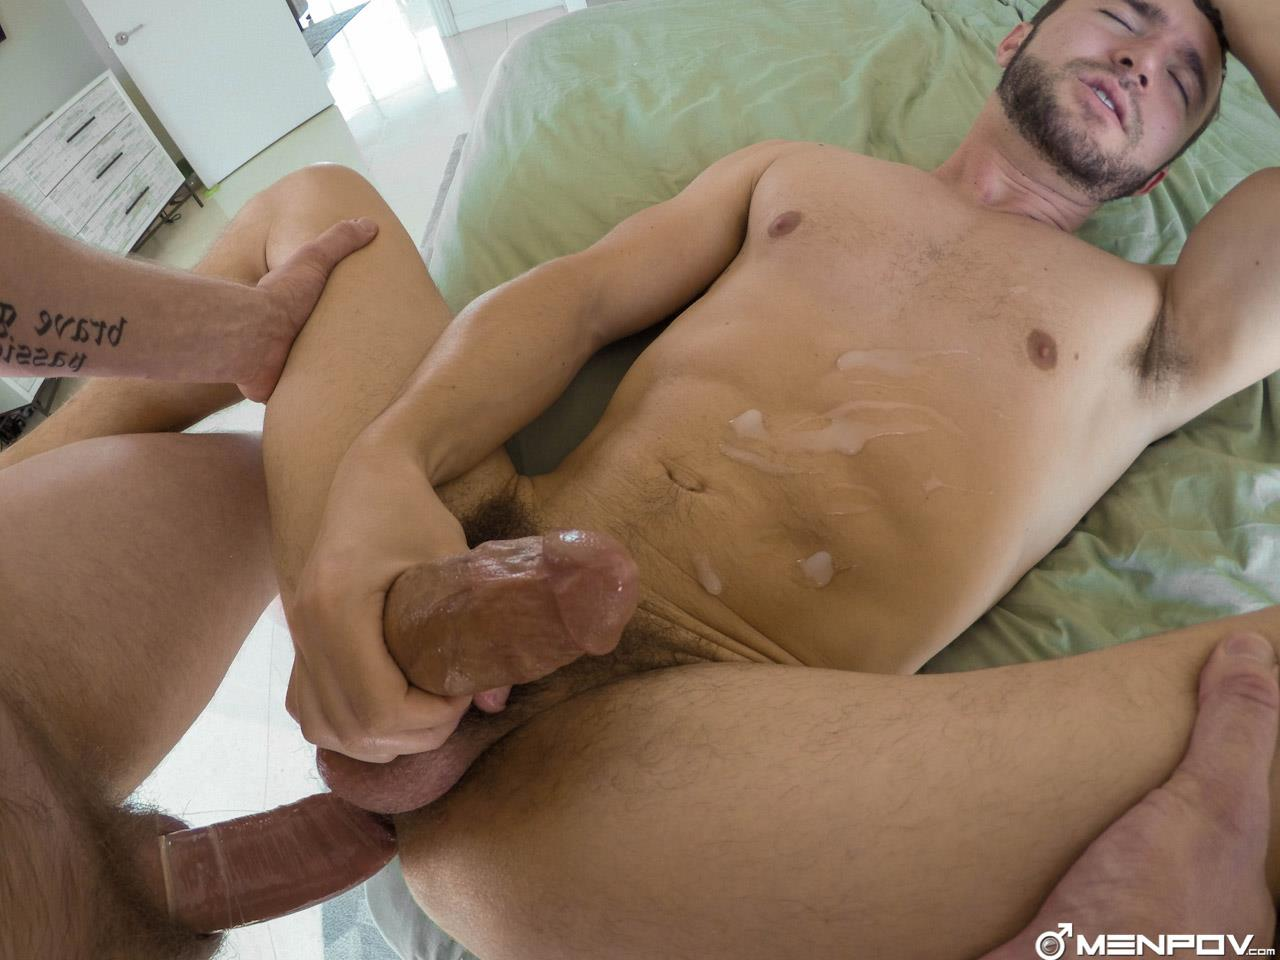 Boy toy gay porn